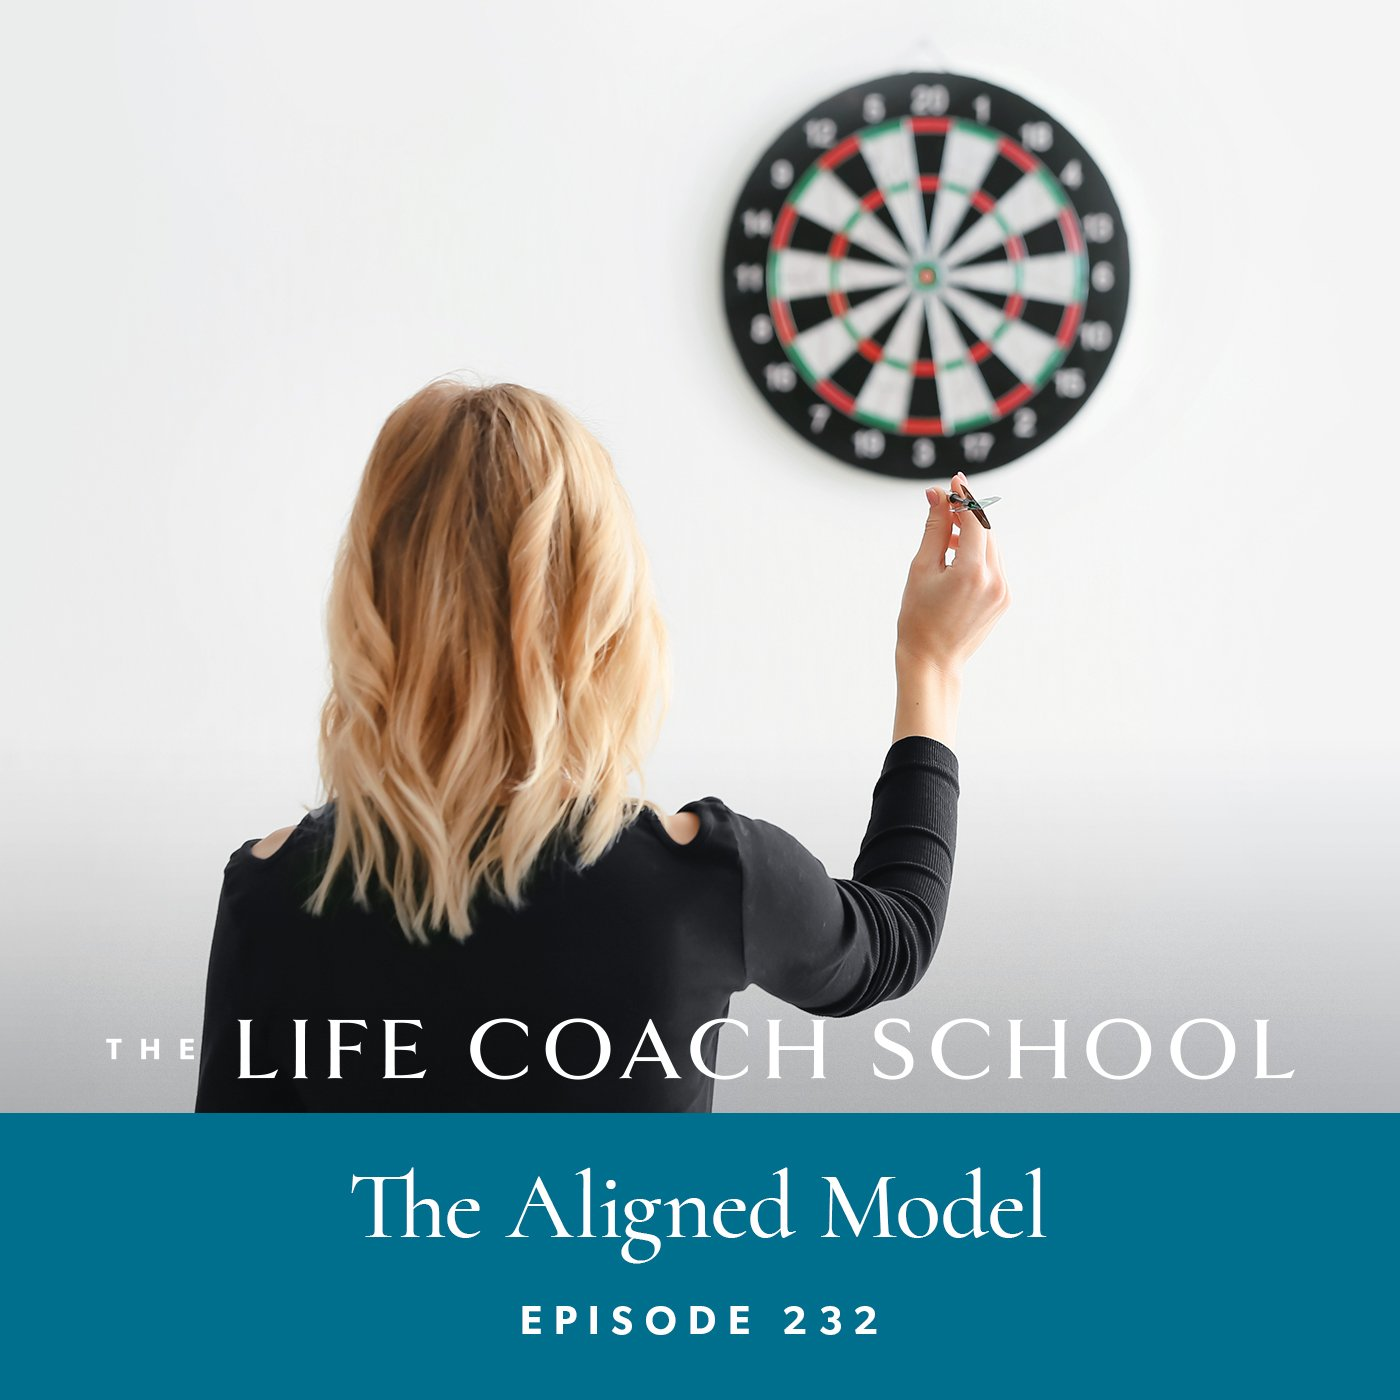 The Life Coach School Podcast with Brooke Castillo | Episode 232 | The Aligned Model